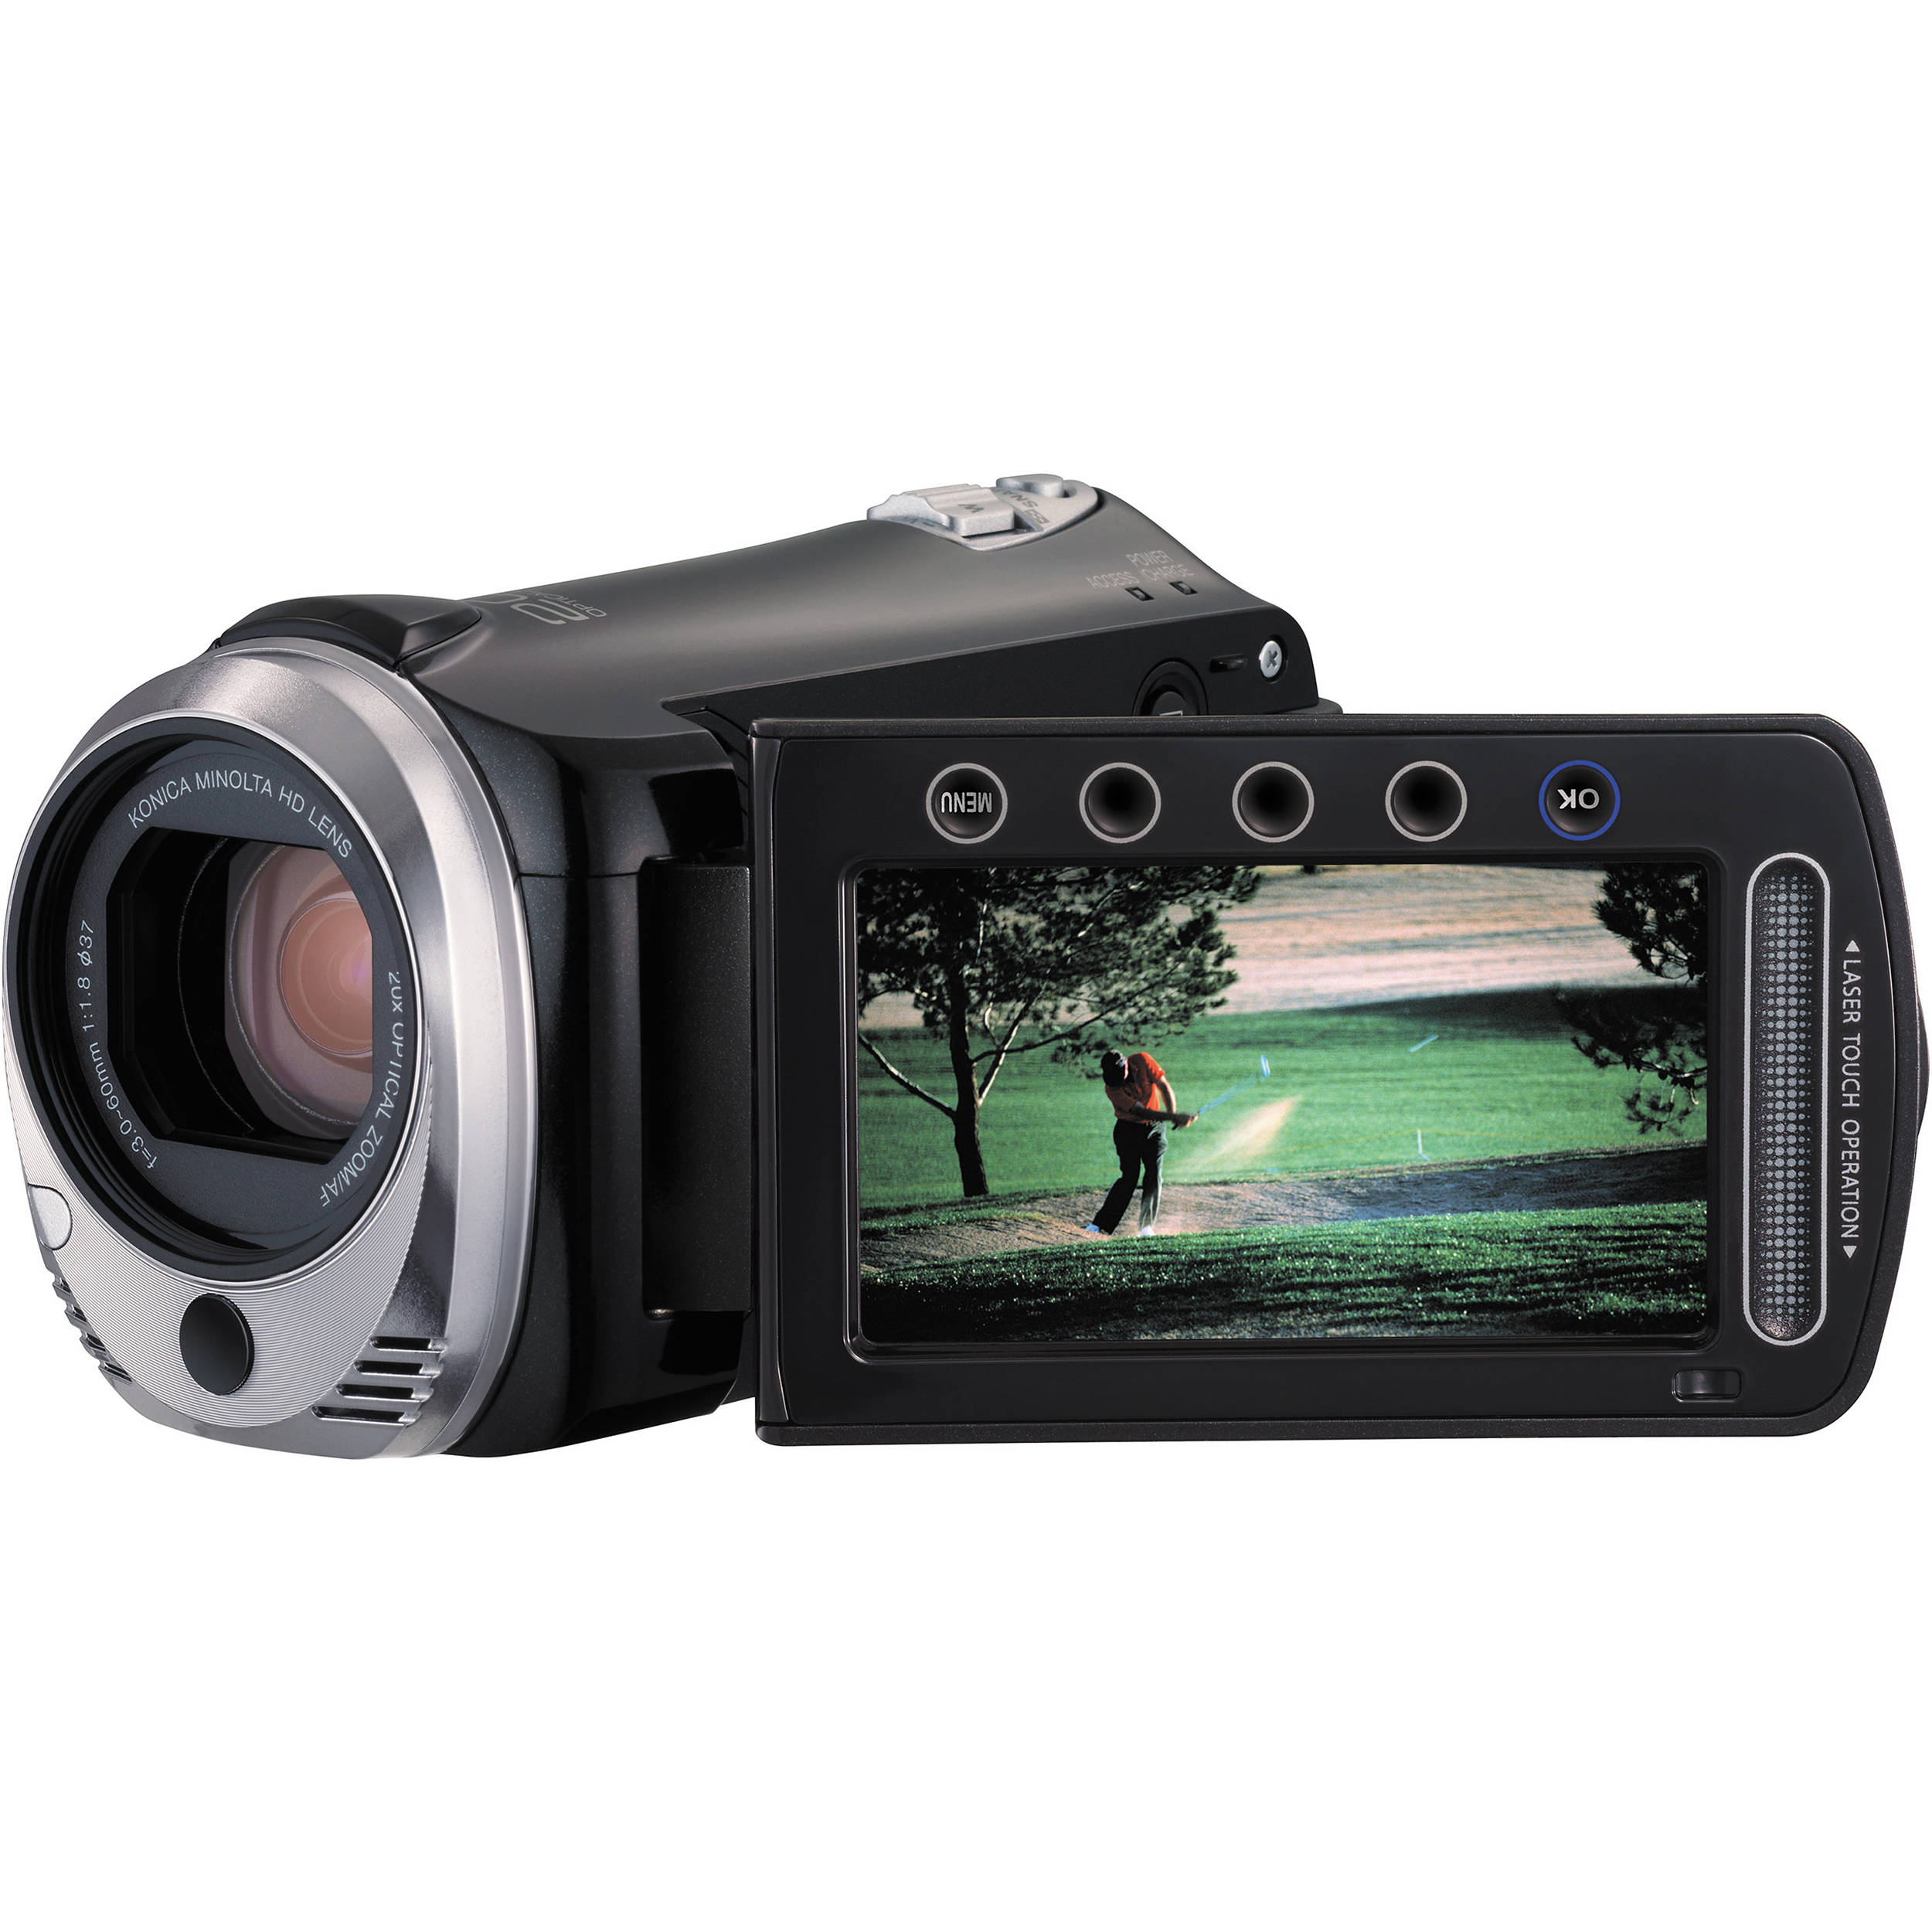 JVC GZ-HM320 HD Everio Flash Memory Camera